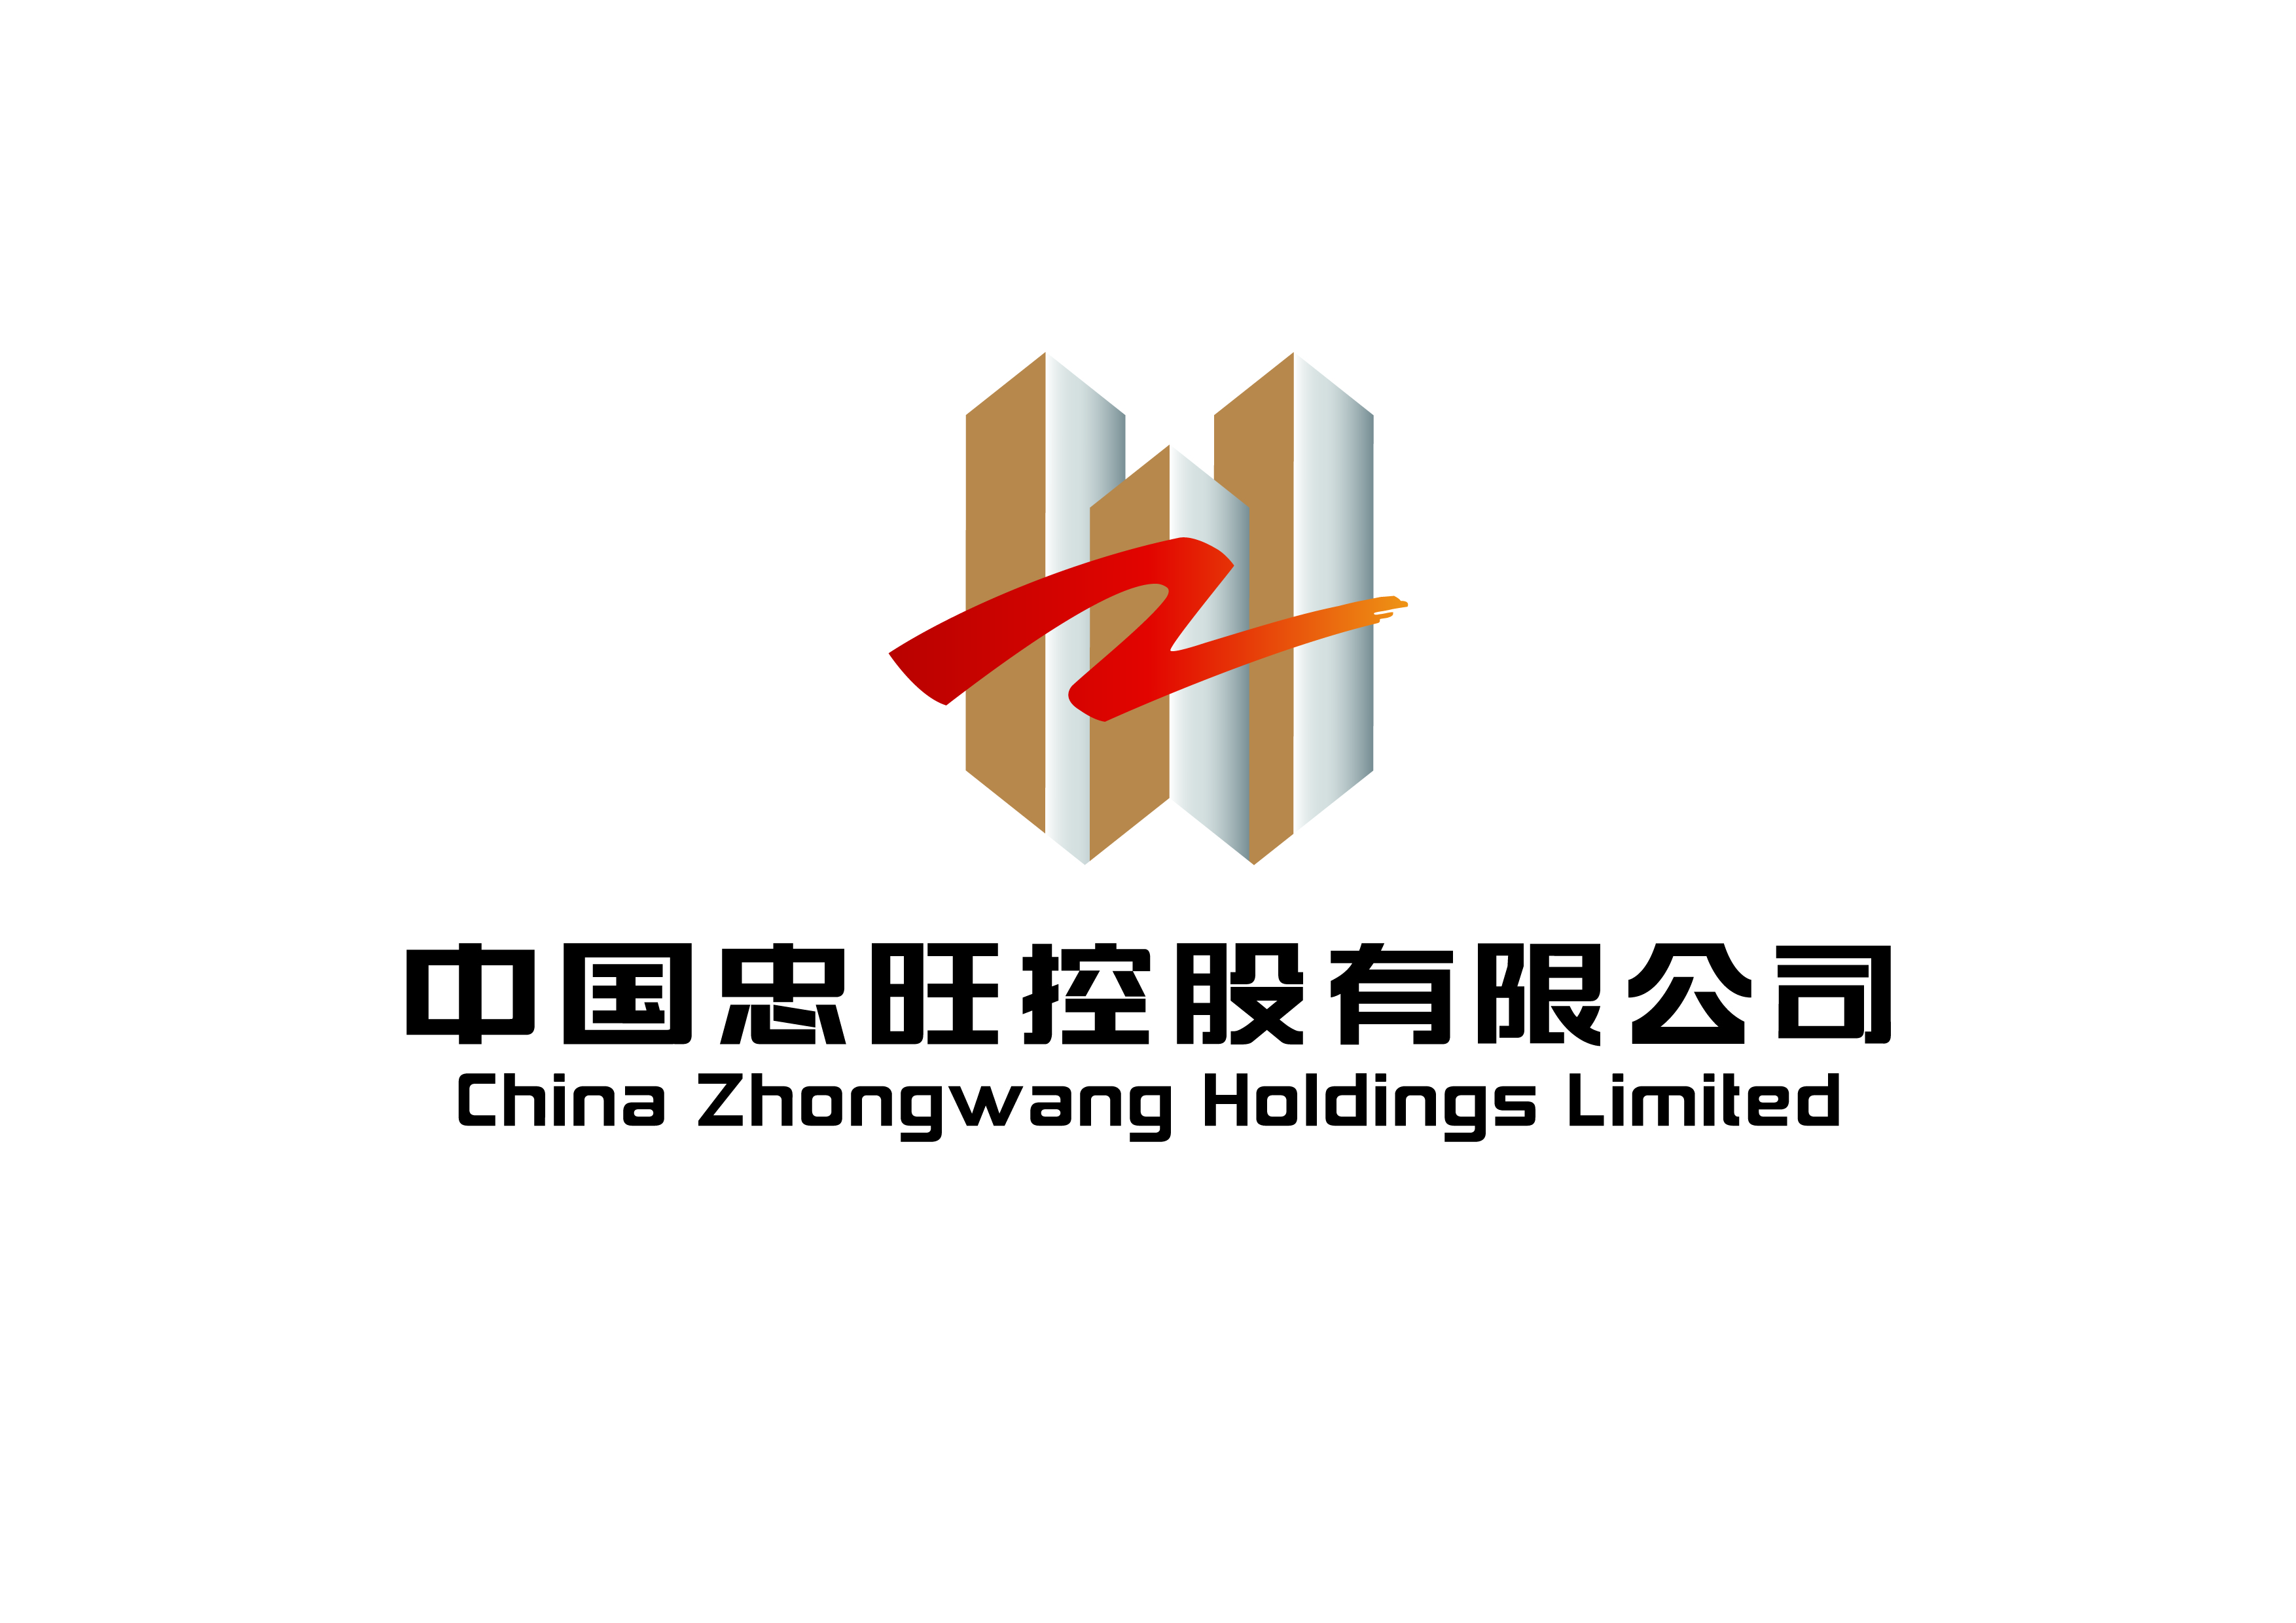 China Zhongwang Holdings Limited